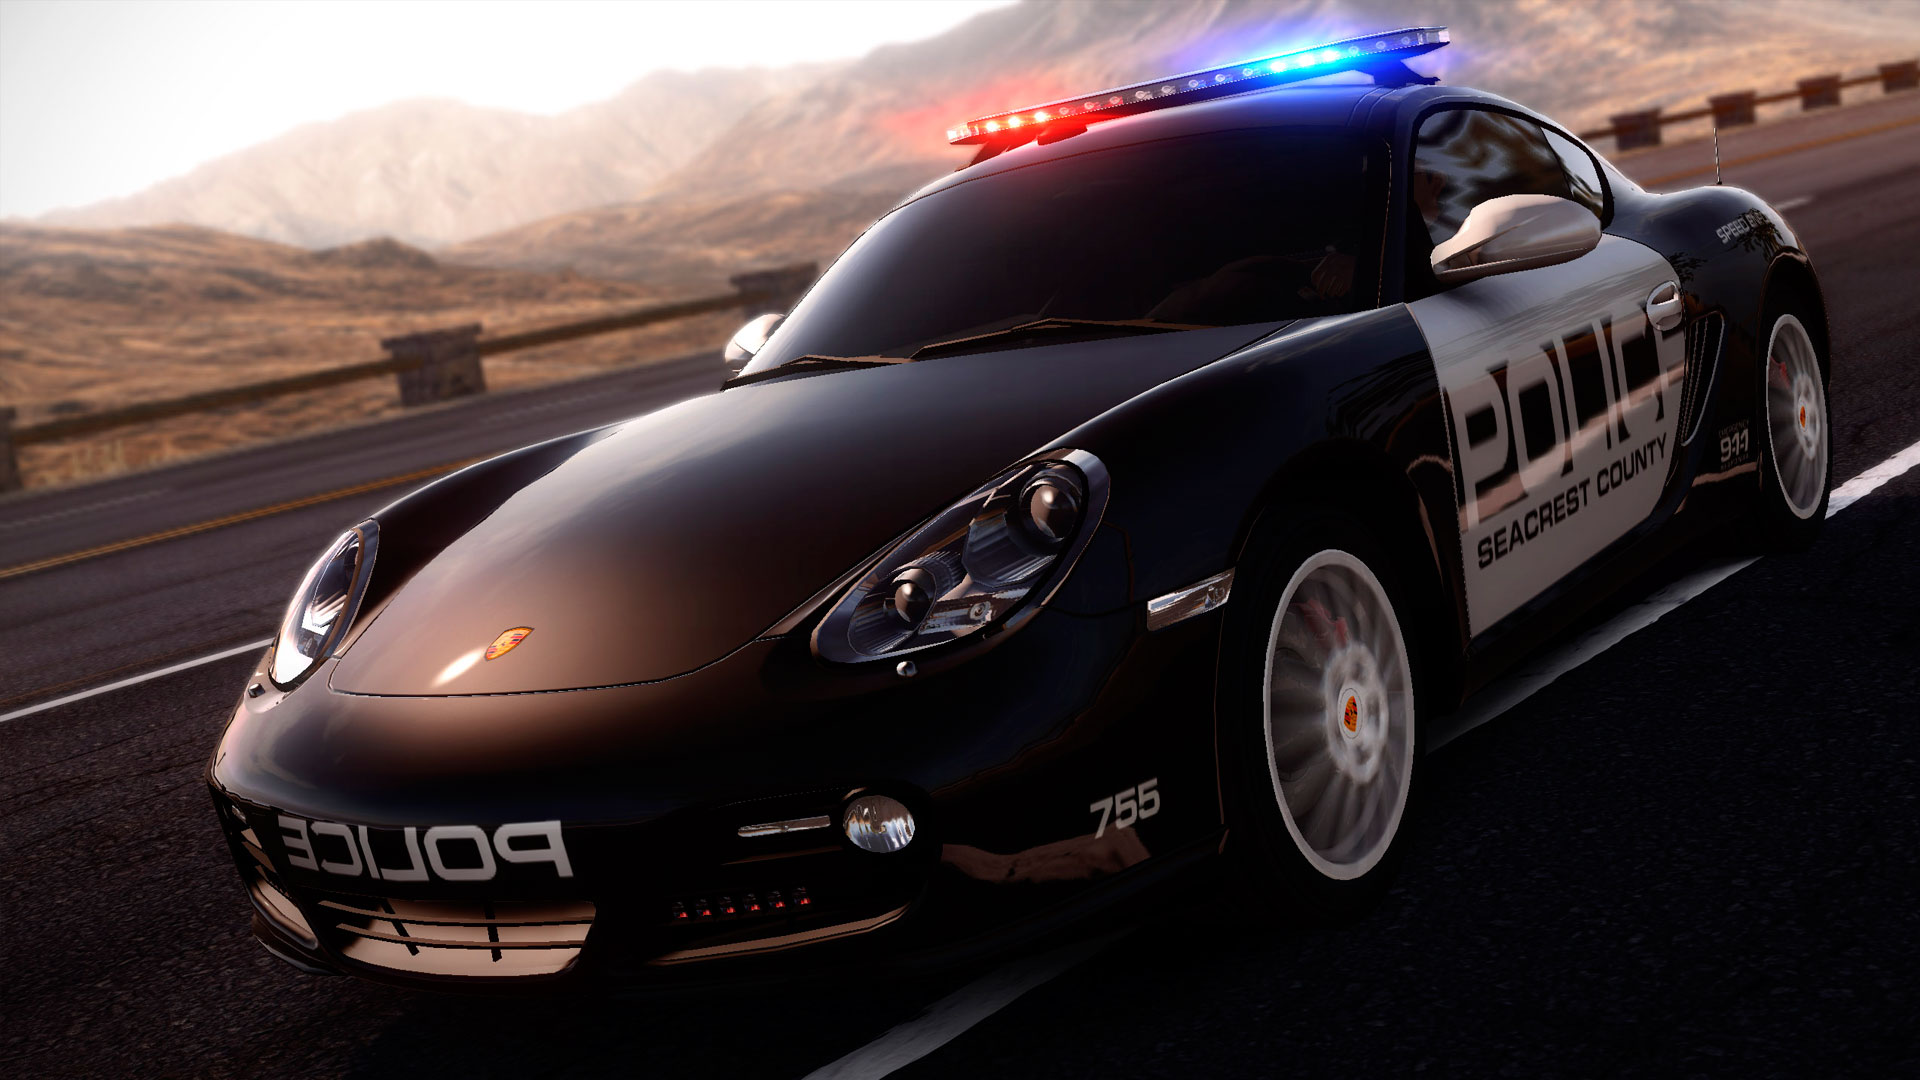 Police Car Hd Desktop Image #6160 Wallpaper | Wallpaper hd